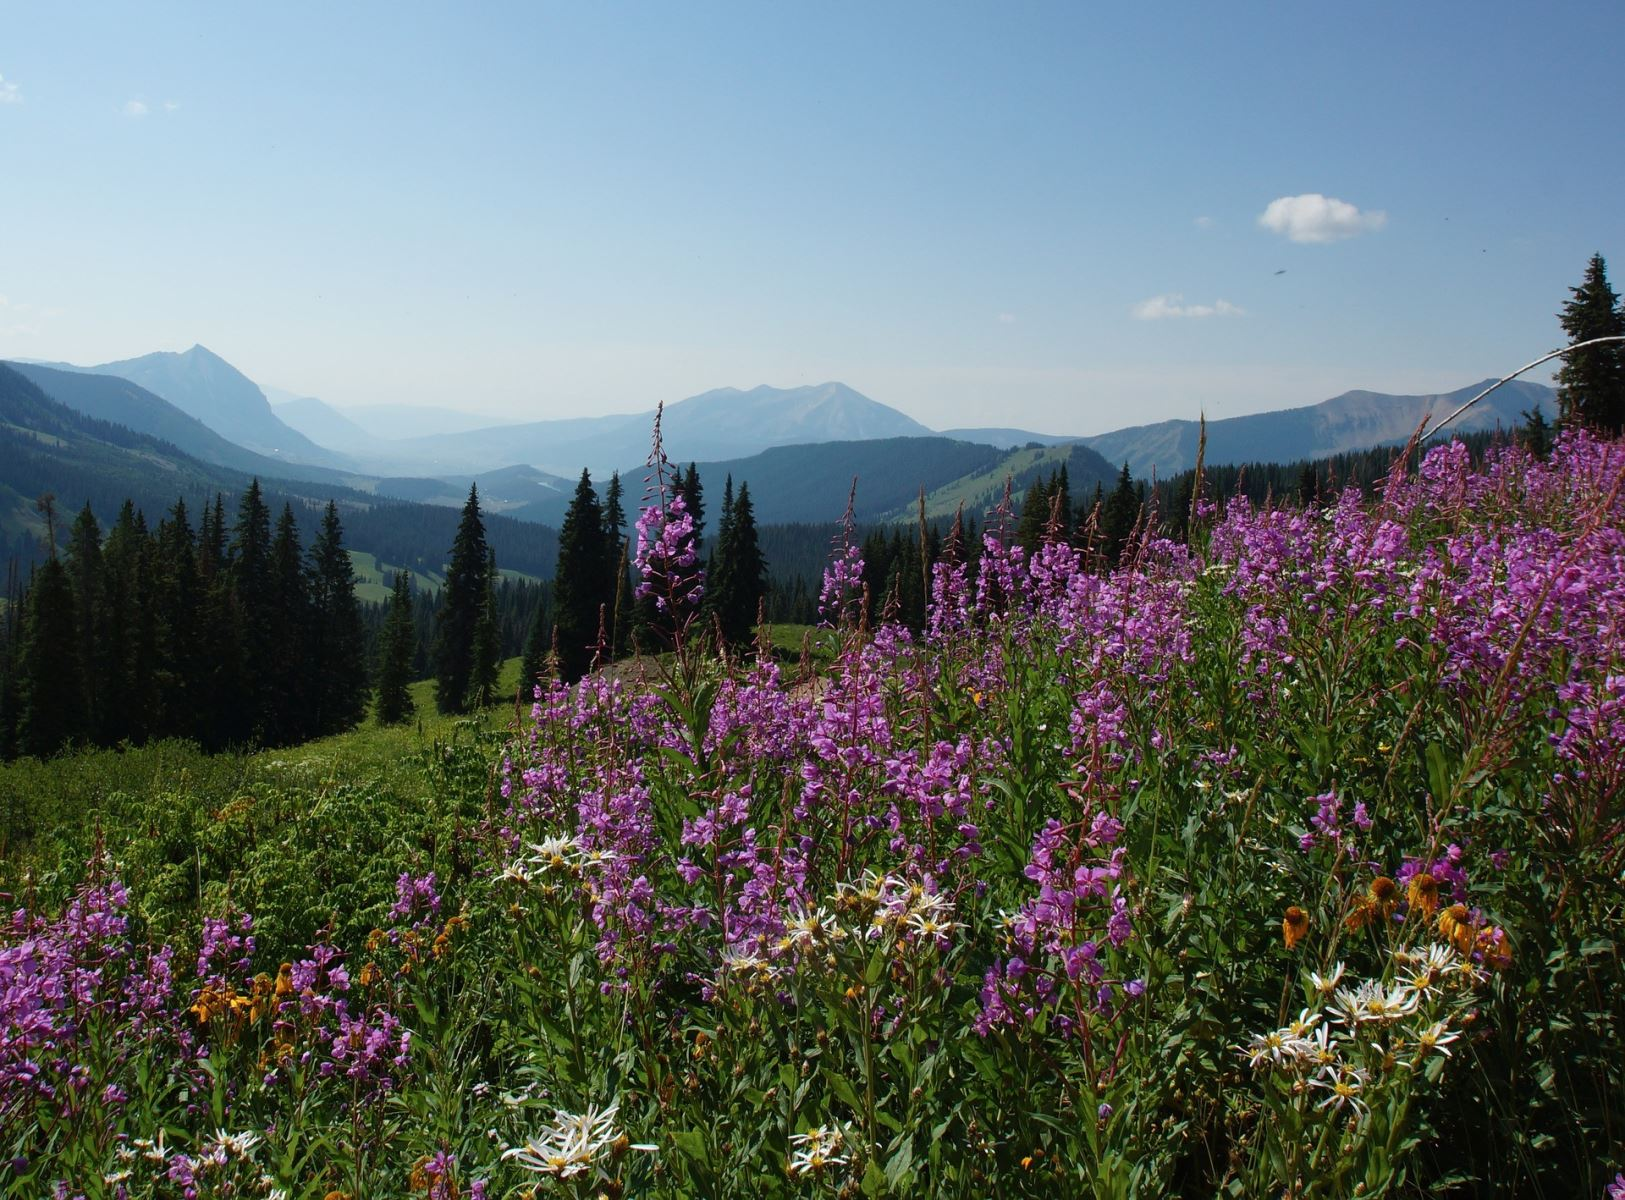 Vail Mountains with Wildflowers